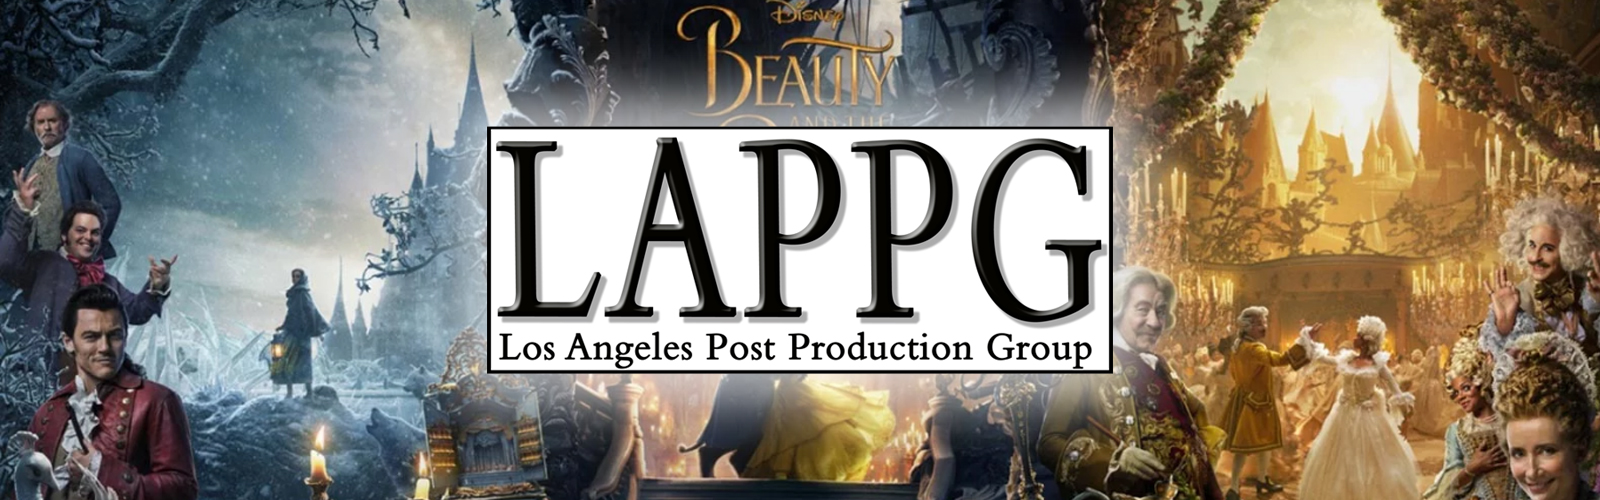 Post Production Los Angeles Lappg February Debunking Post Production Myths Beauty The